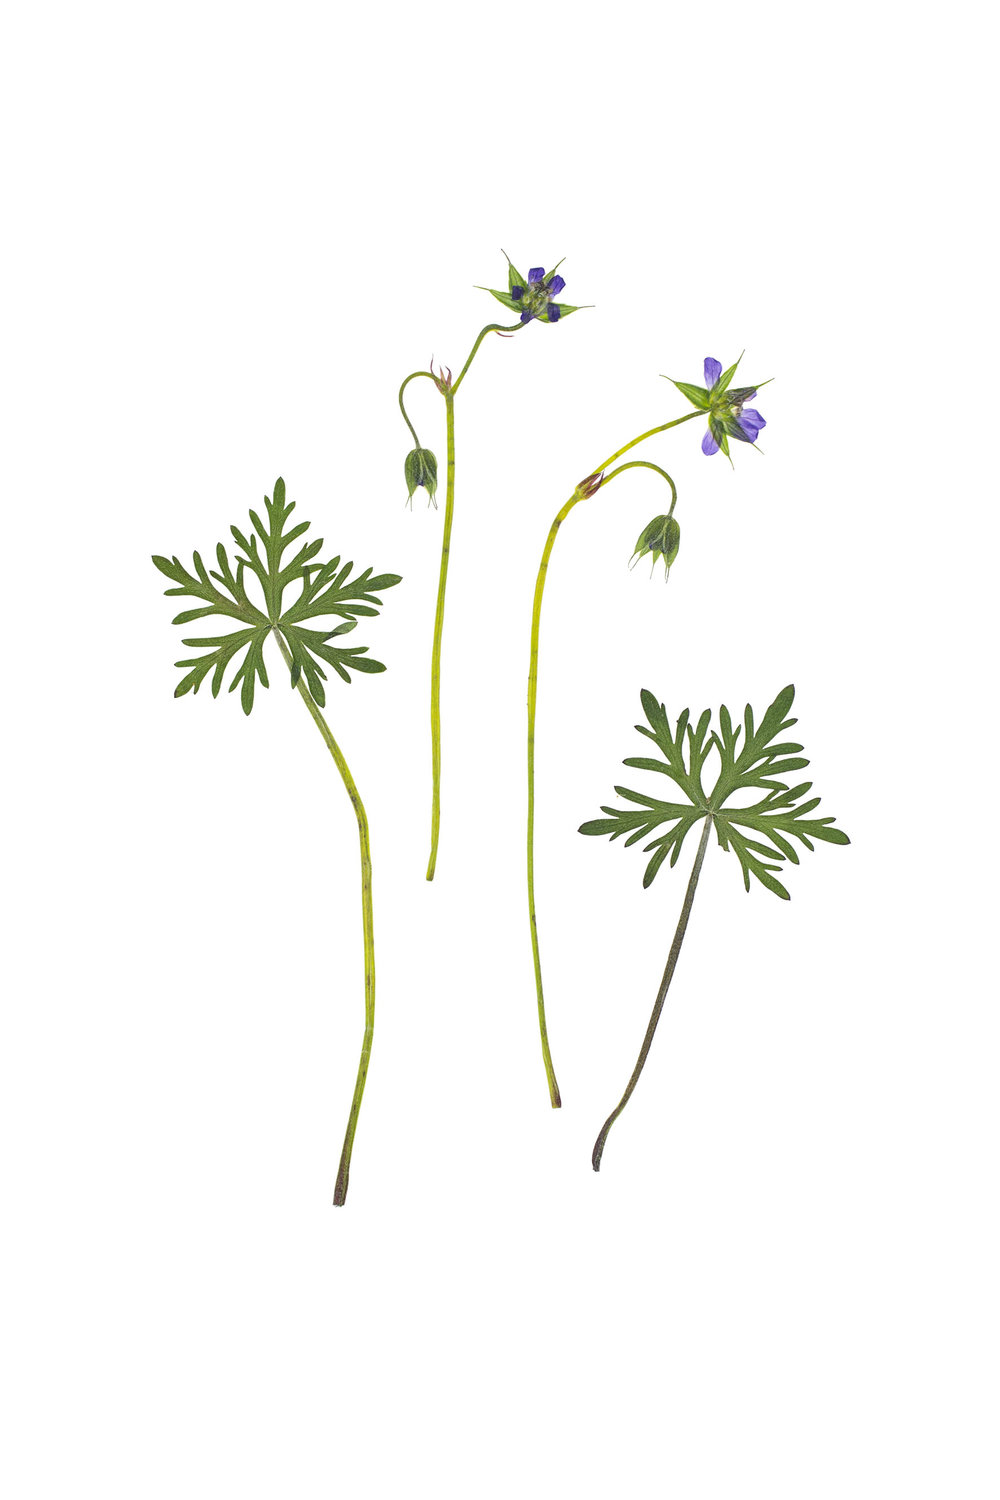 New! Geranium columbinum / Long Stalked Cranesbill